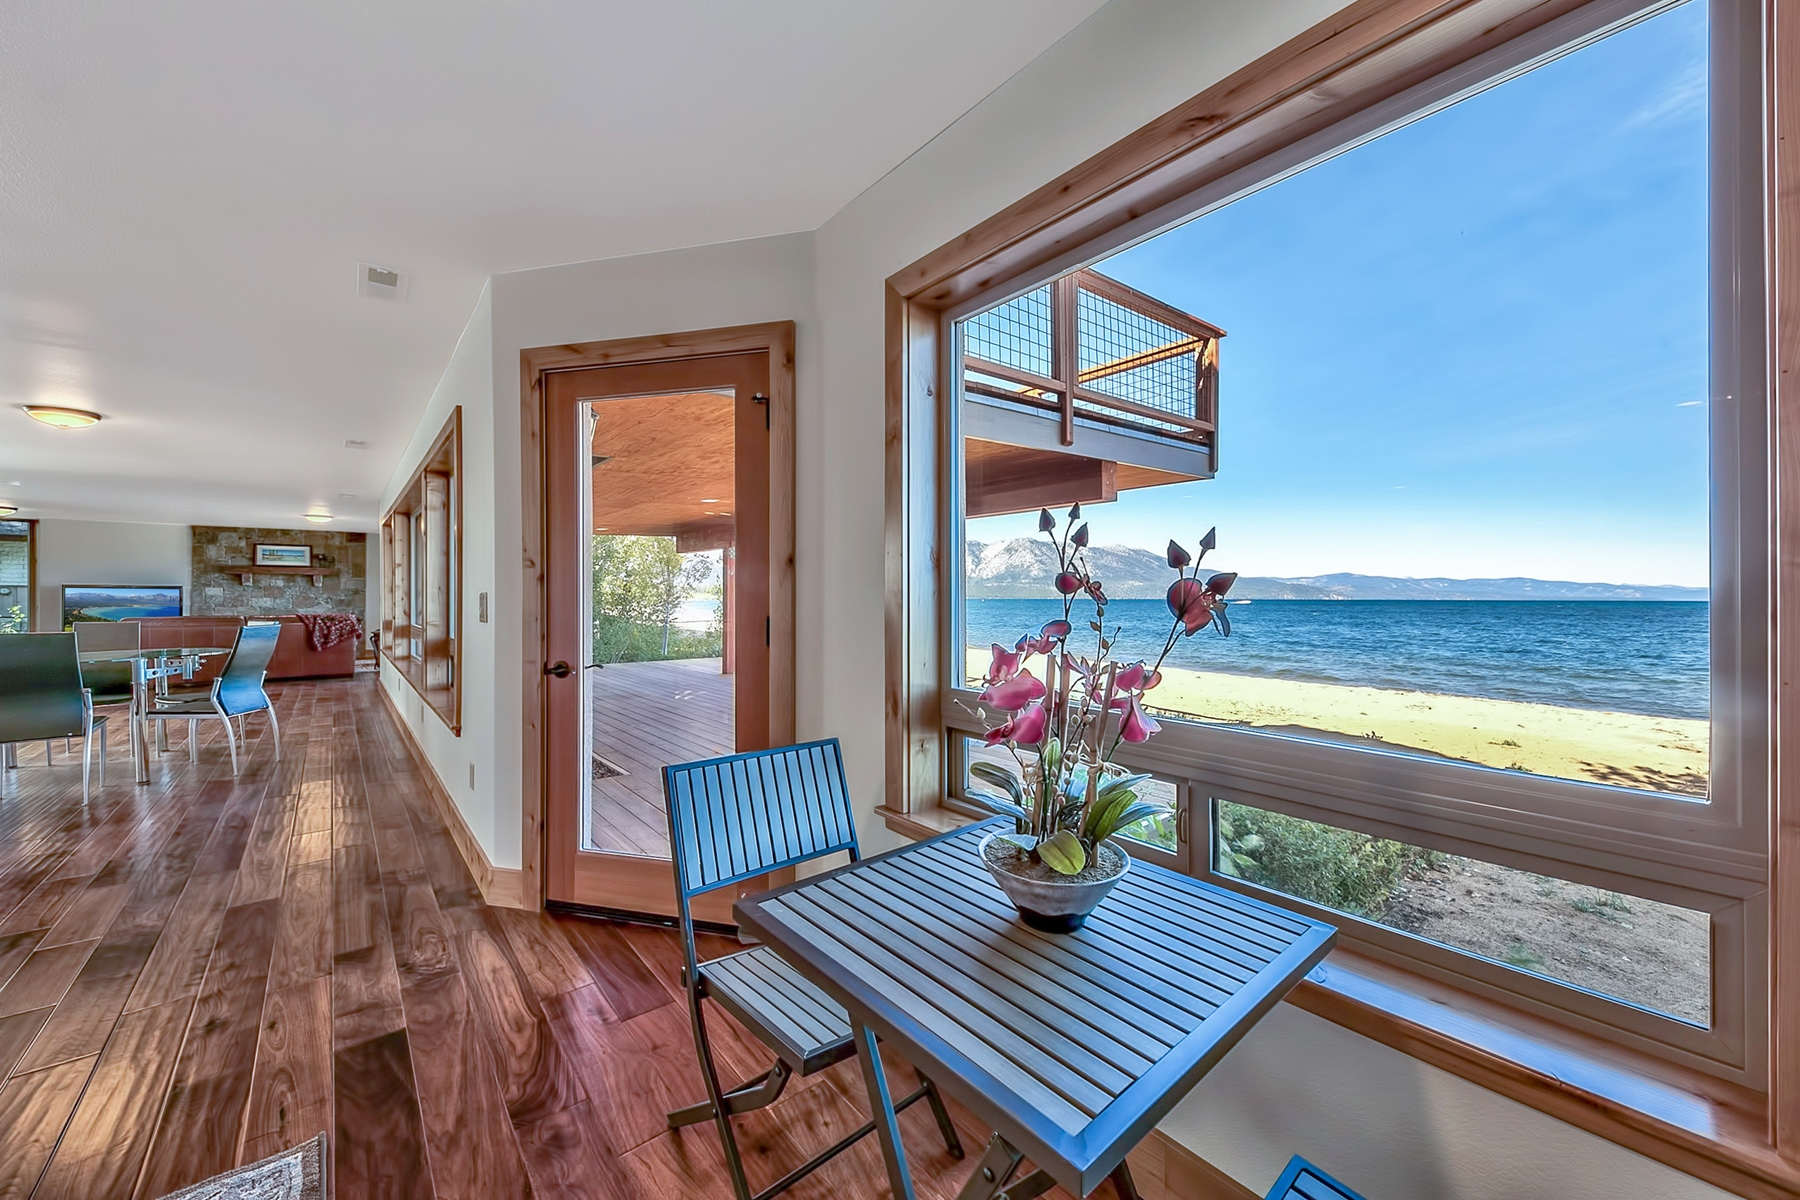 Single Family Home for Active at 319 Beach Drive South Lake Tahoe California, 96150 319 Beach Drive South Lake Tahoe, California 96150 United States